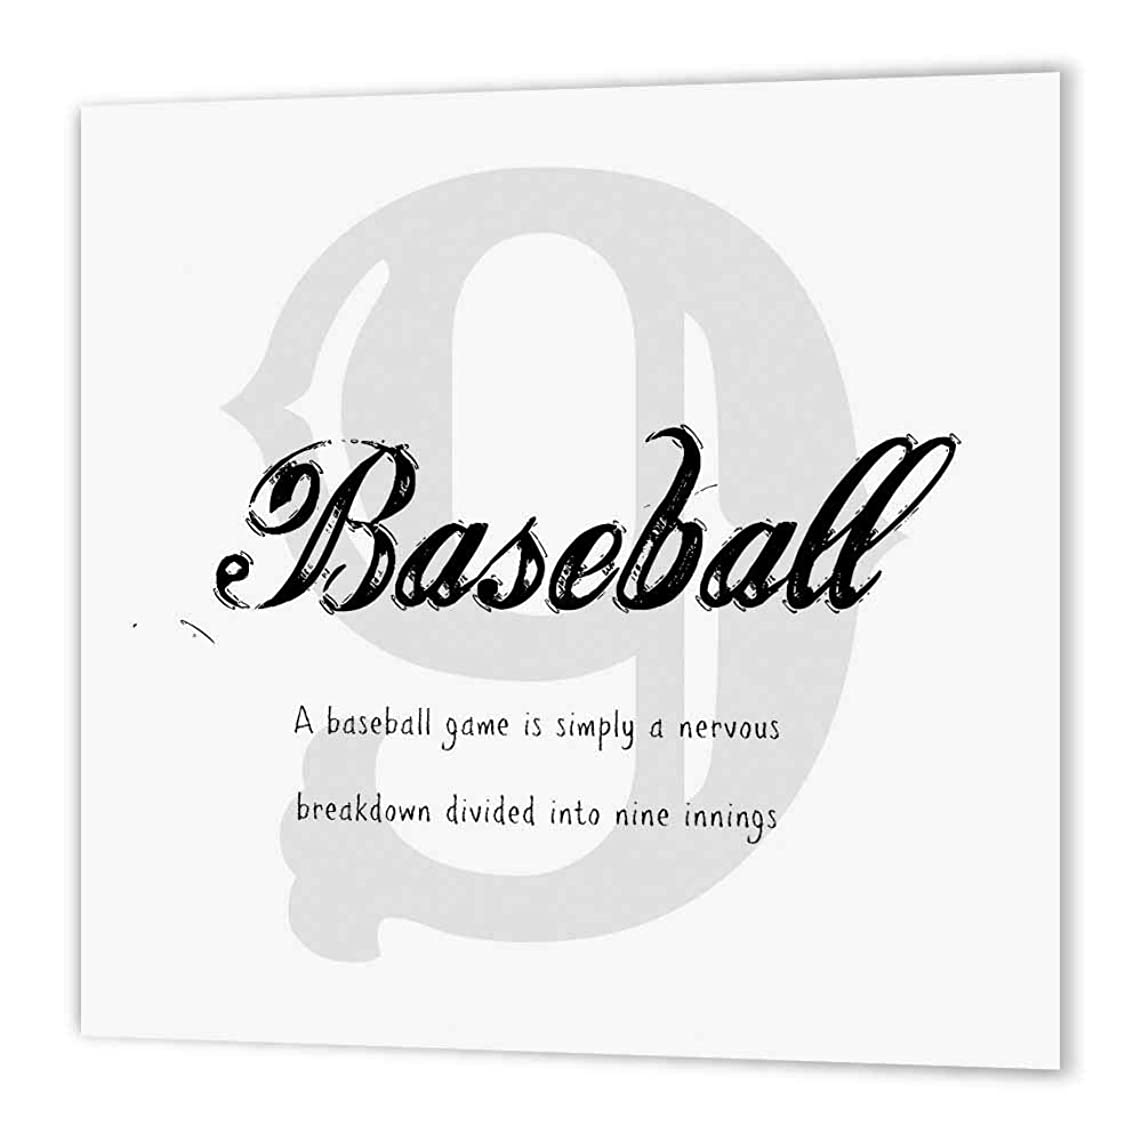 3dRose ht_180132_3 A Baseball Game is Simply Nervous Breakdown Broken Down into 9 Innings-Iron on Heat Transfer Paper for White Material, 10 by 10-Inch